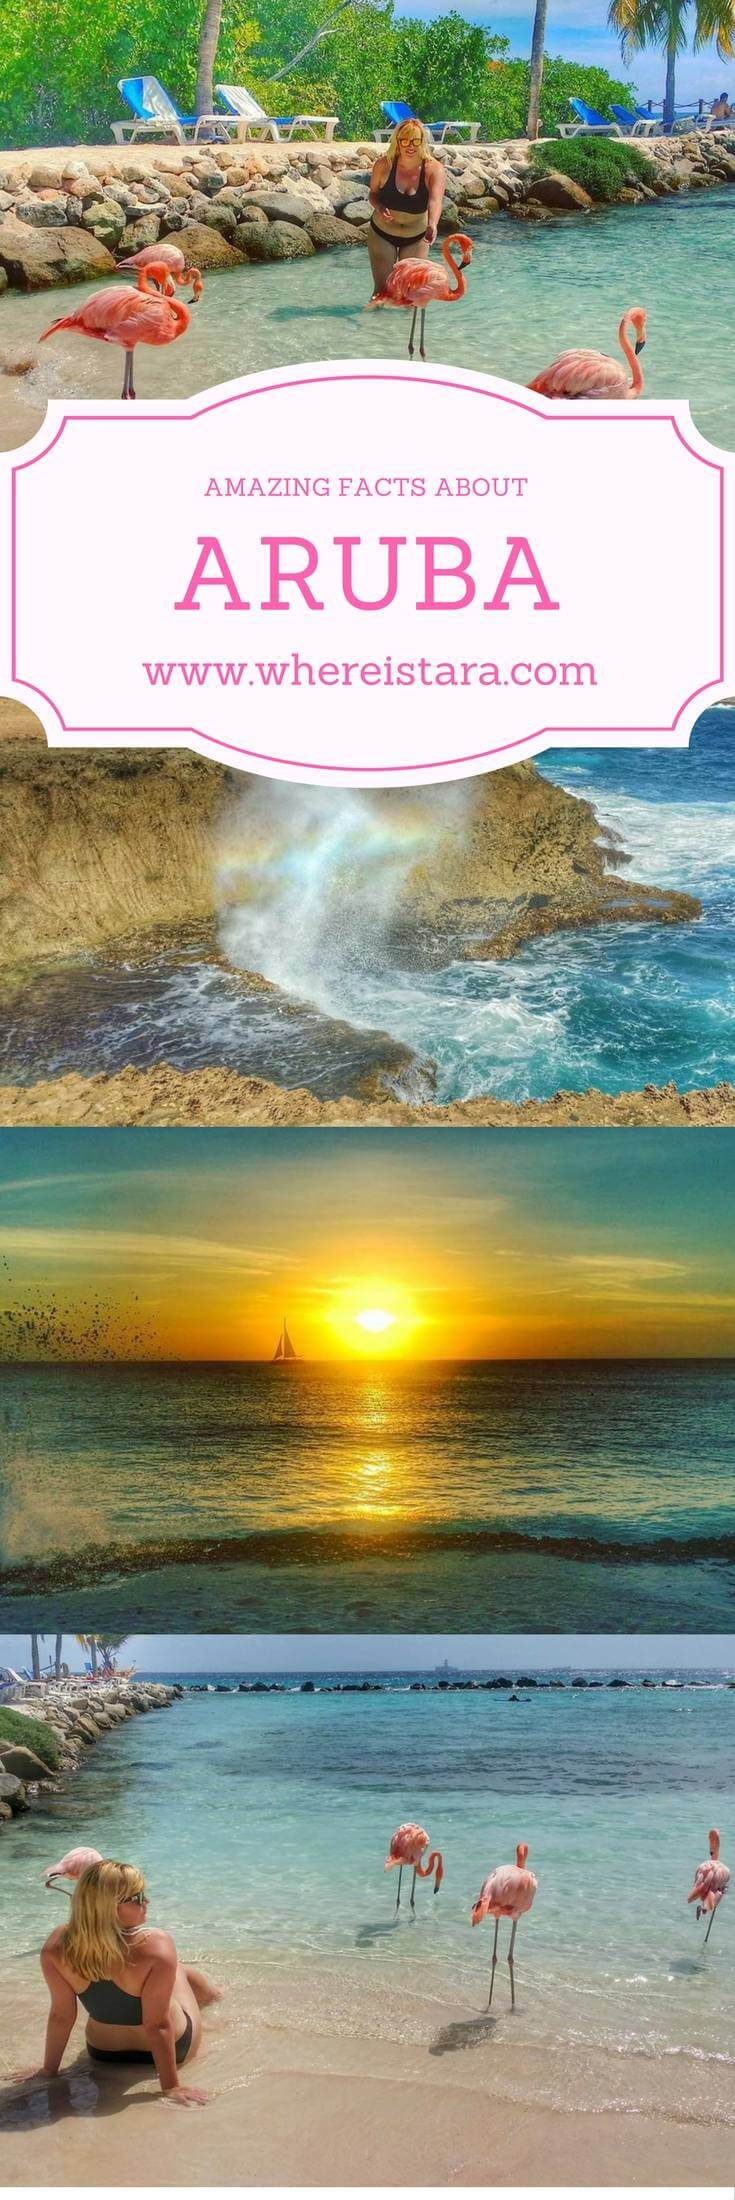 interesting facts about aruba facts how big is aruba slogan